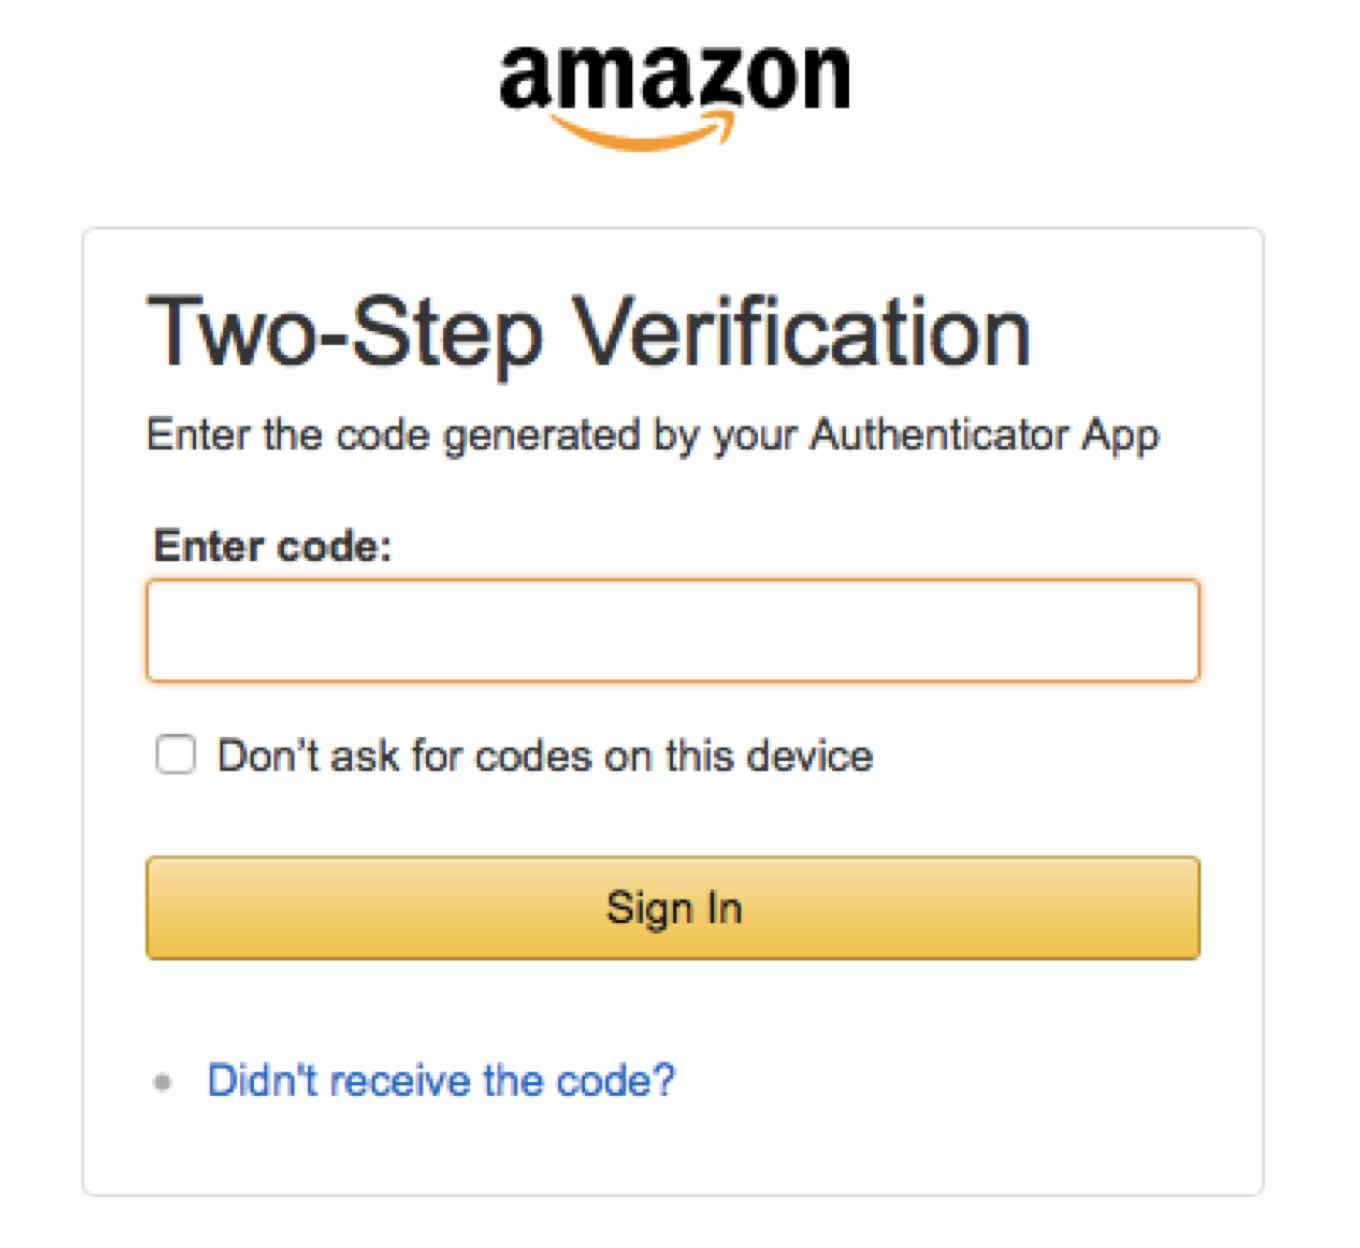 Amazon two-step